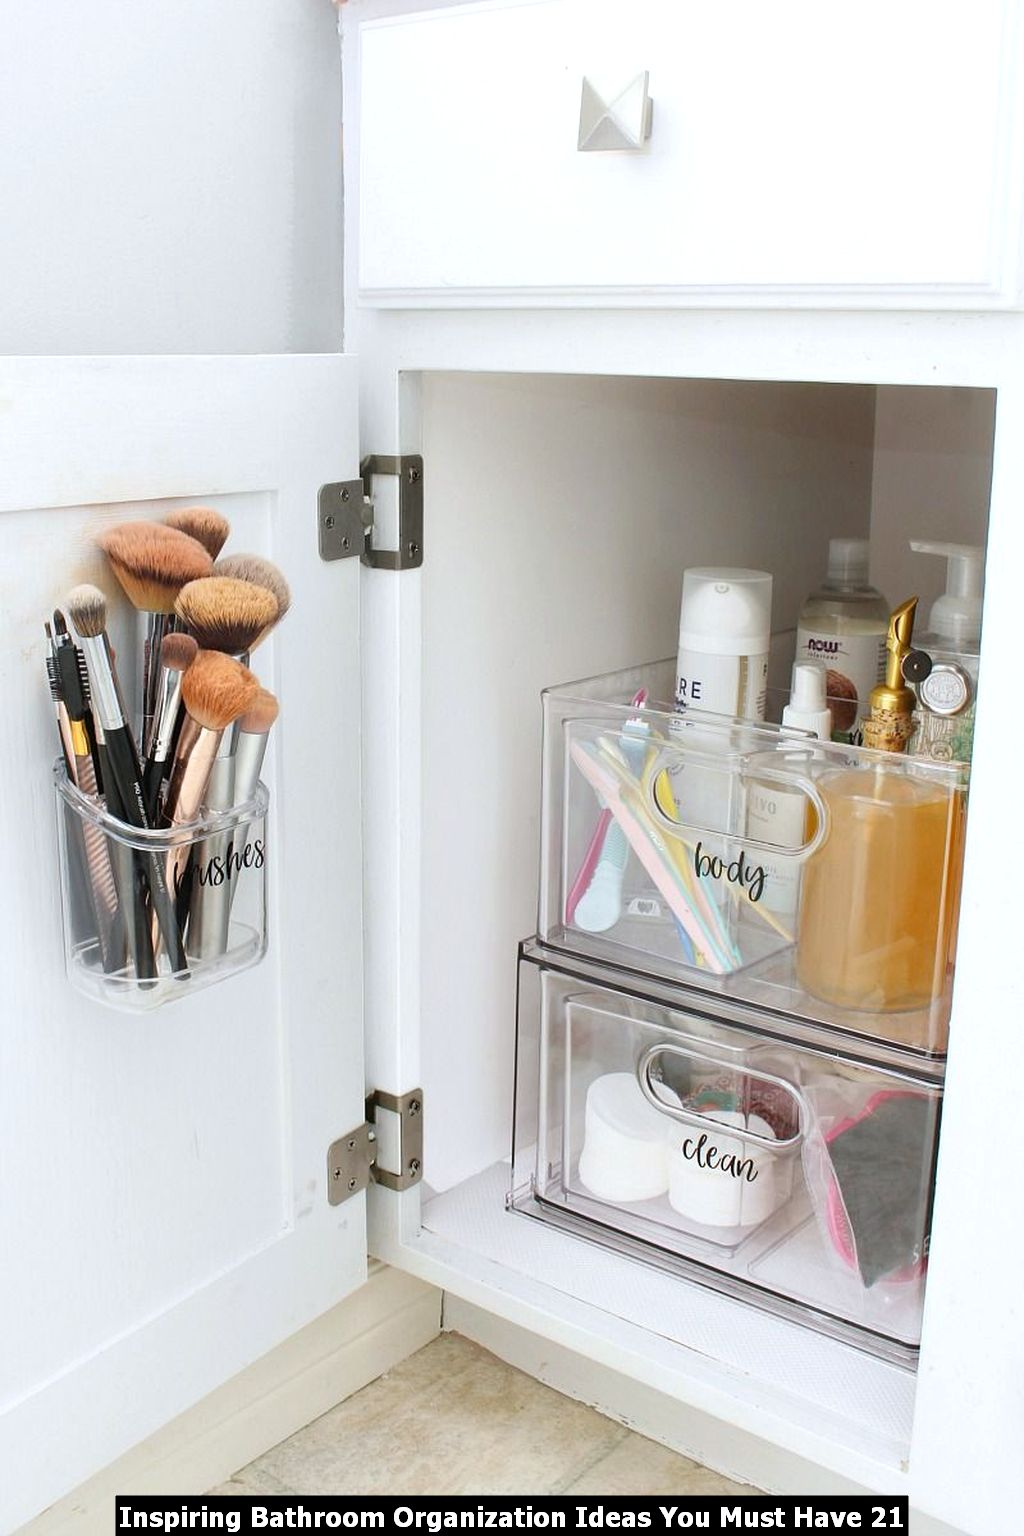 Inspiring Bathroom Organization Ideas You Must Have 21